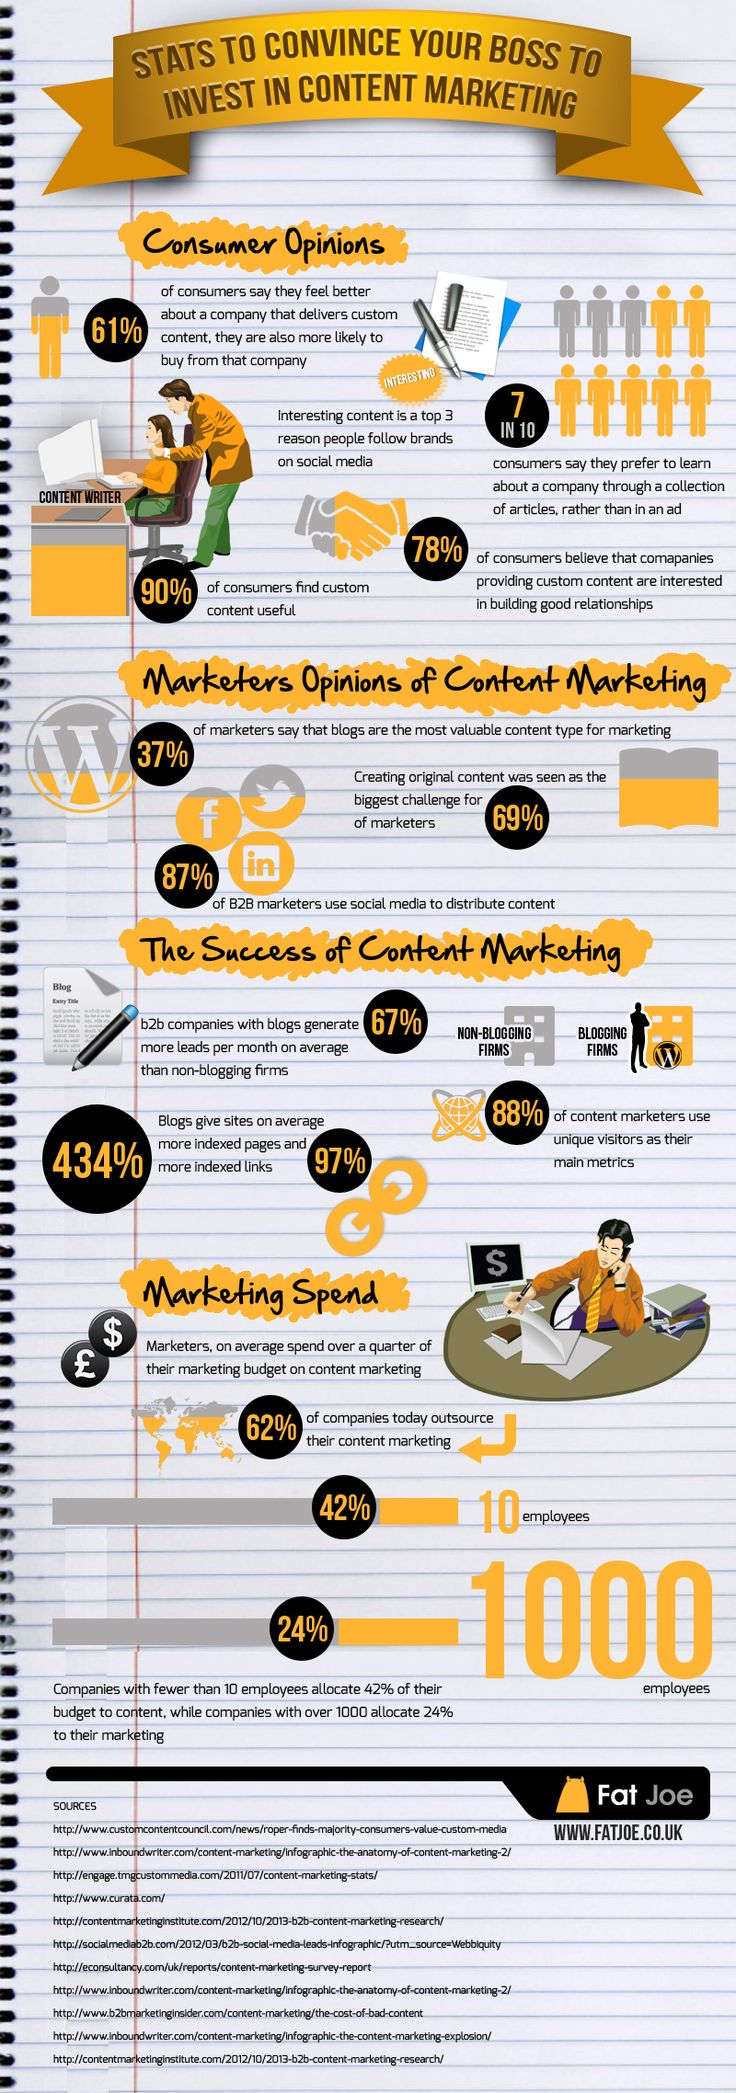 Stats To Convince Your Boss To Invest In Content Marketing - #Infographic